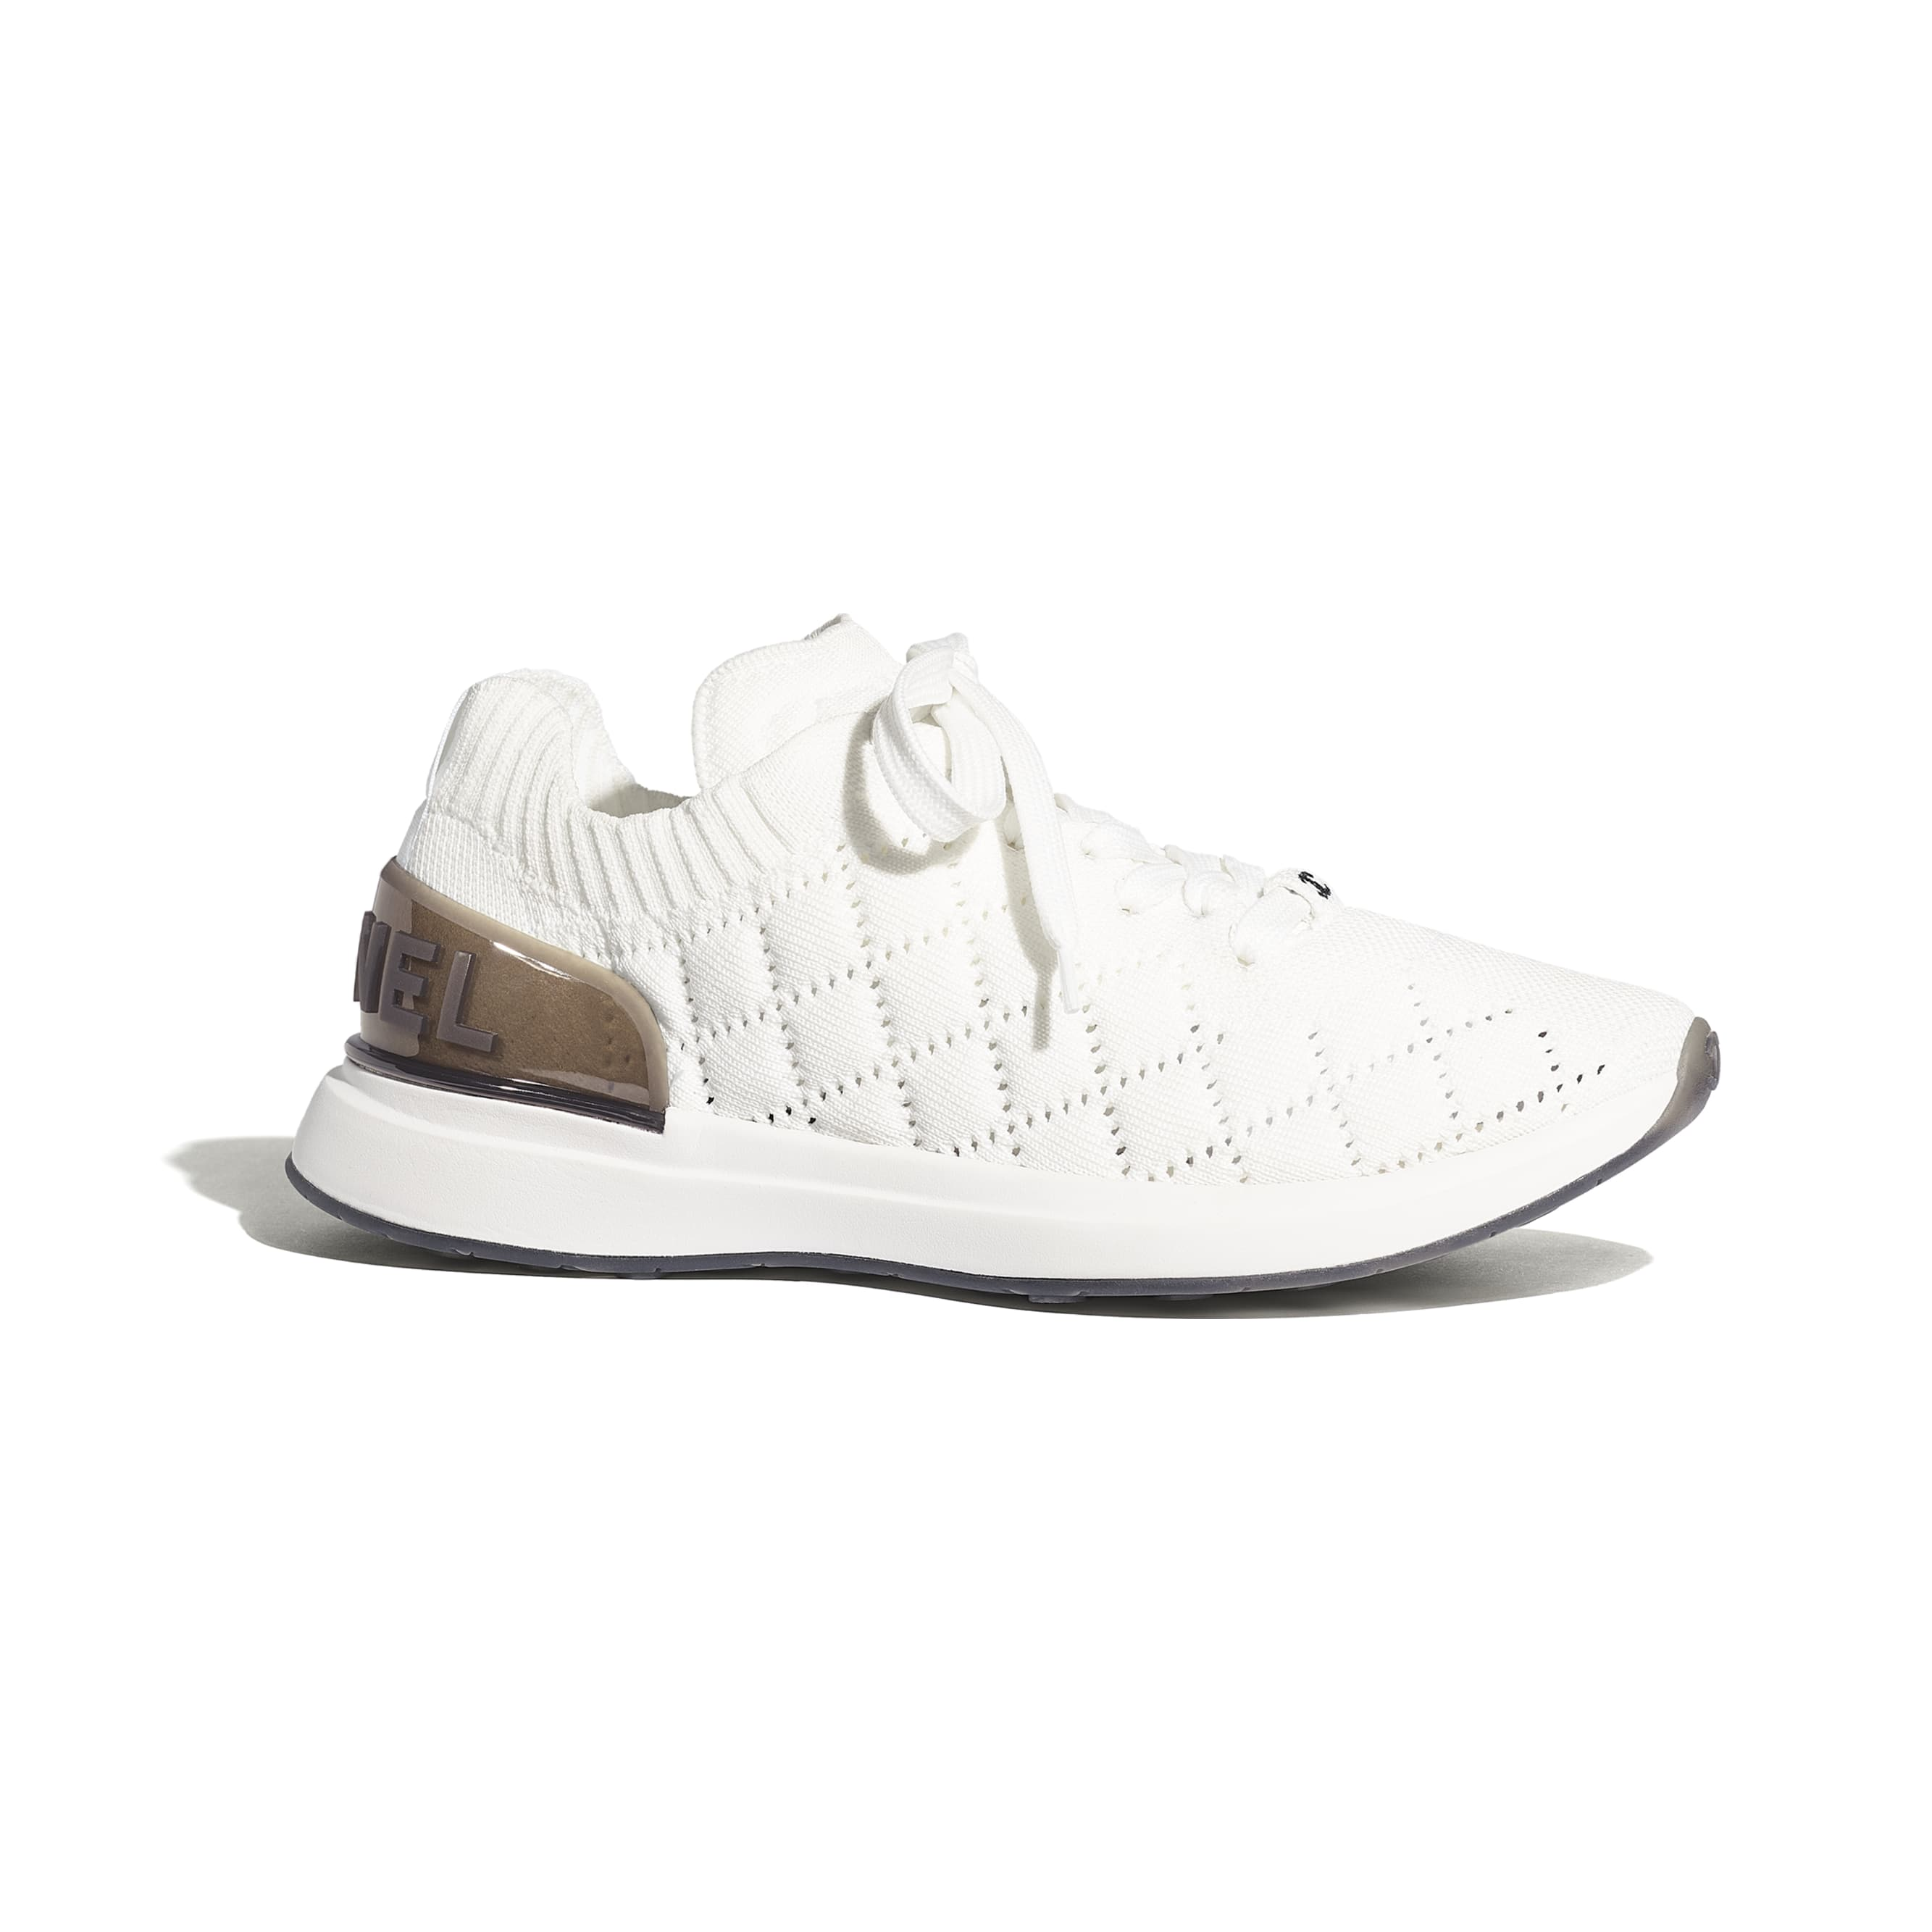 Trainers - White - Mixed Fibres - Default view - see standard sized version